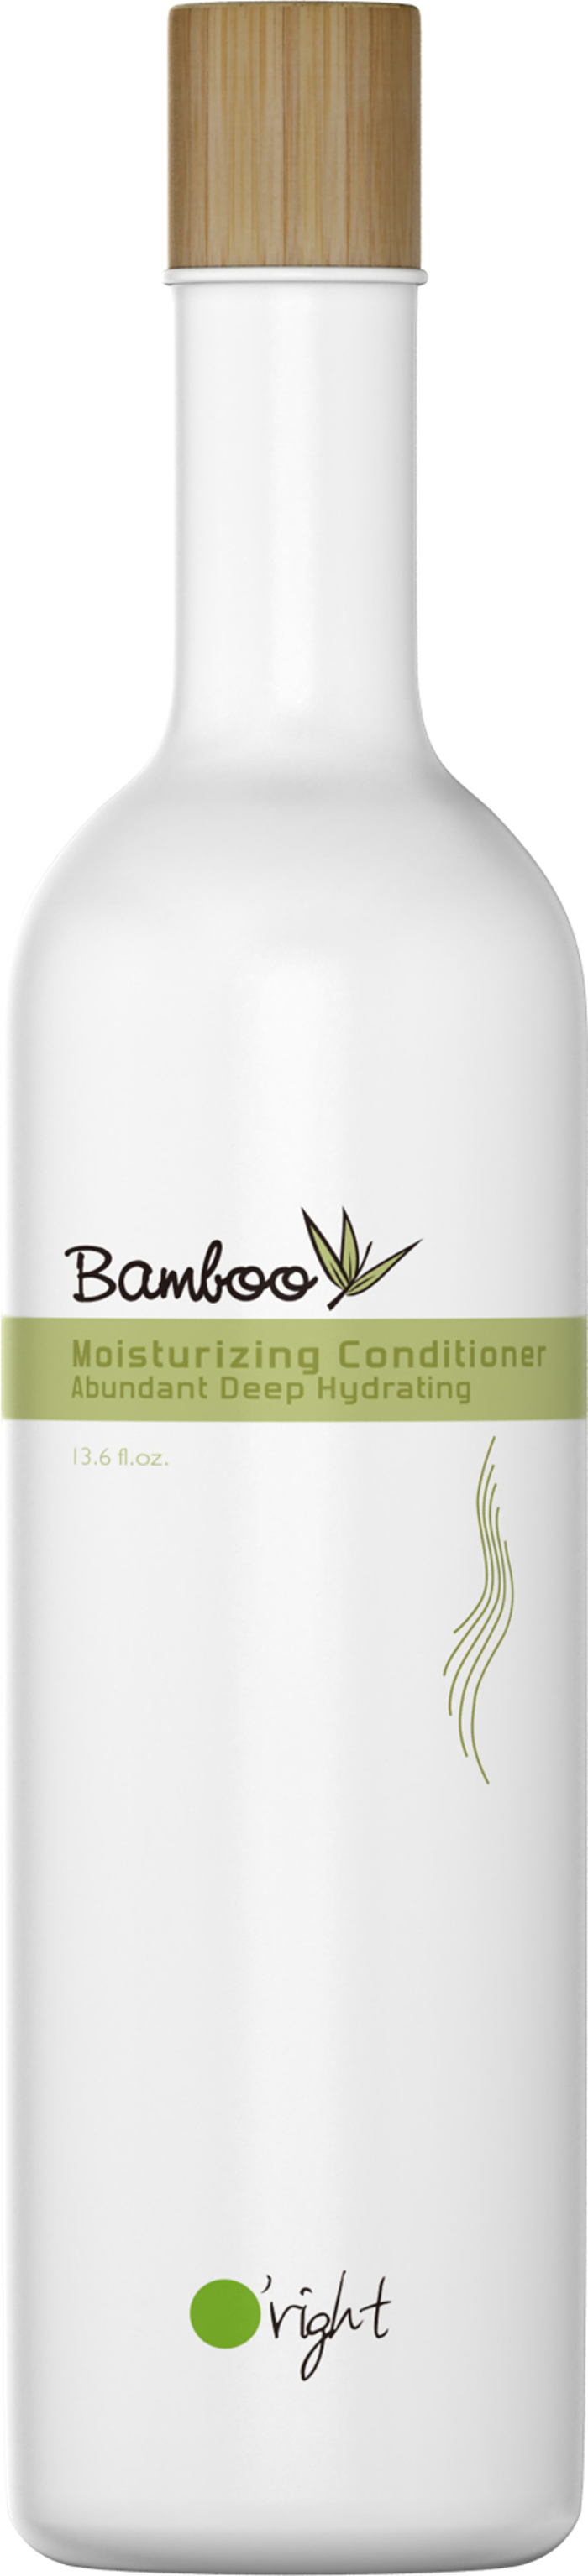 Bamboo Moisturizing Conditioner 400ml